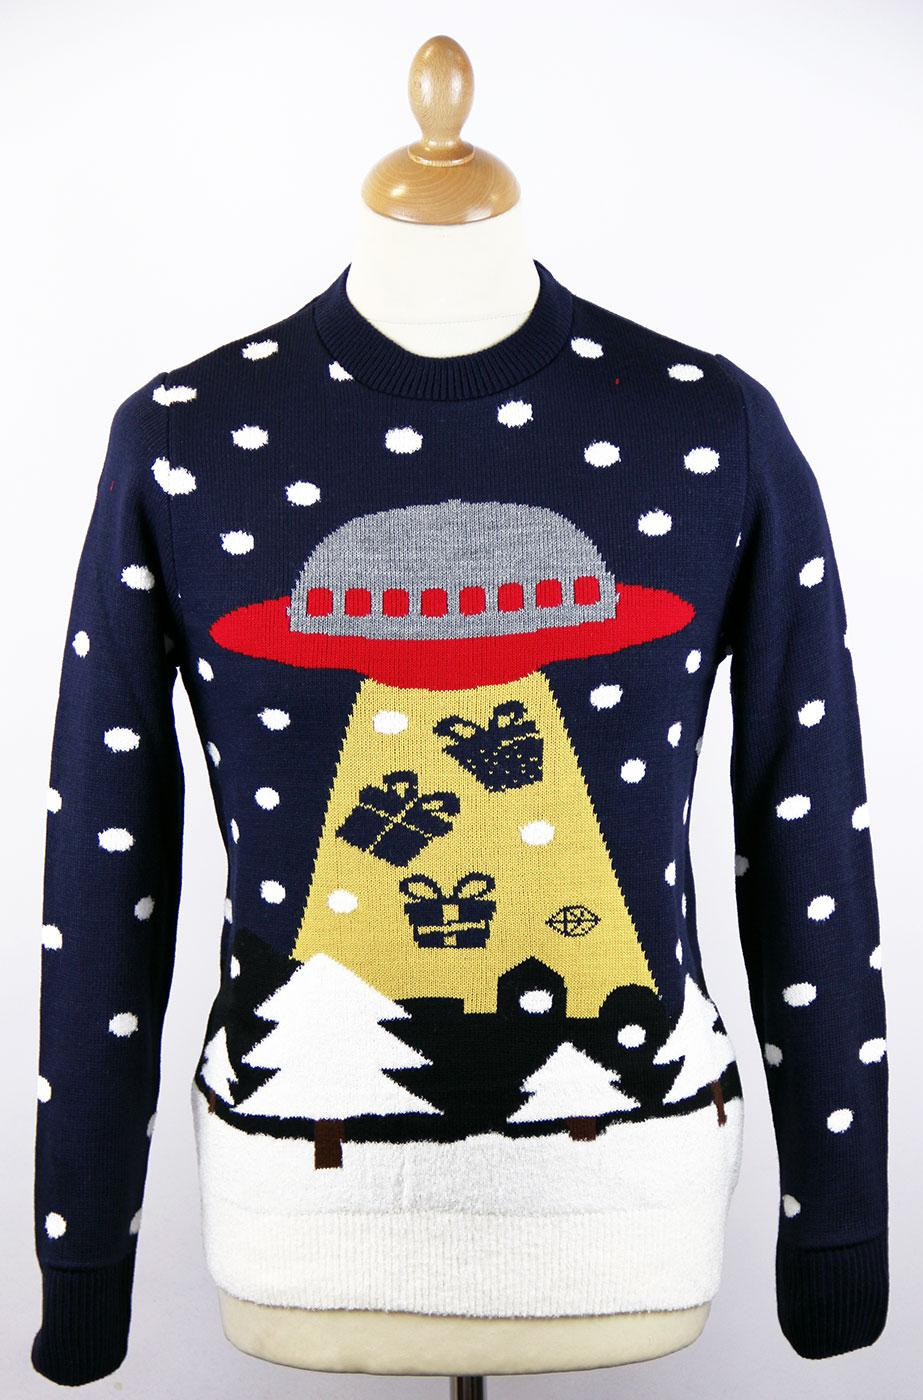 BEAM ME UP PRESSIES' RETRO 70S SPACESHIP CHRISTMAS JUMPER on The Hunt